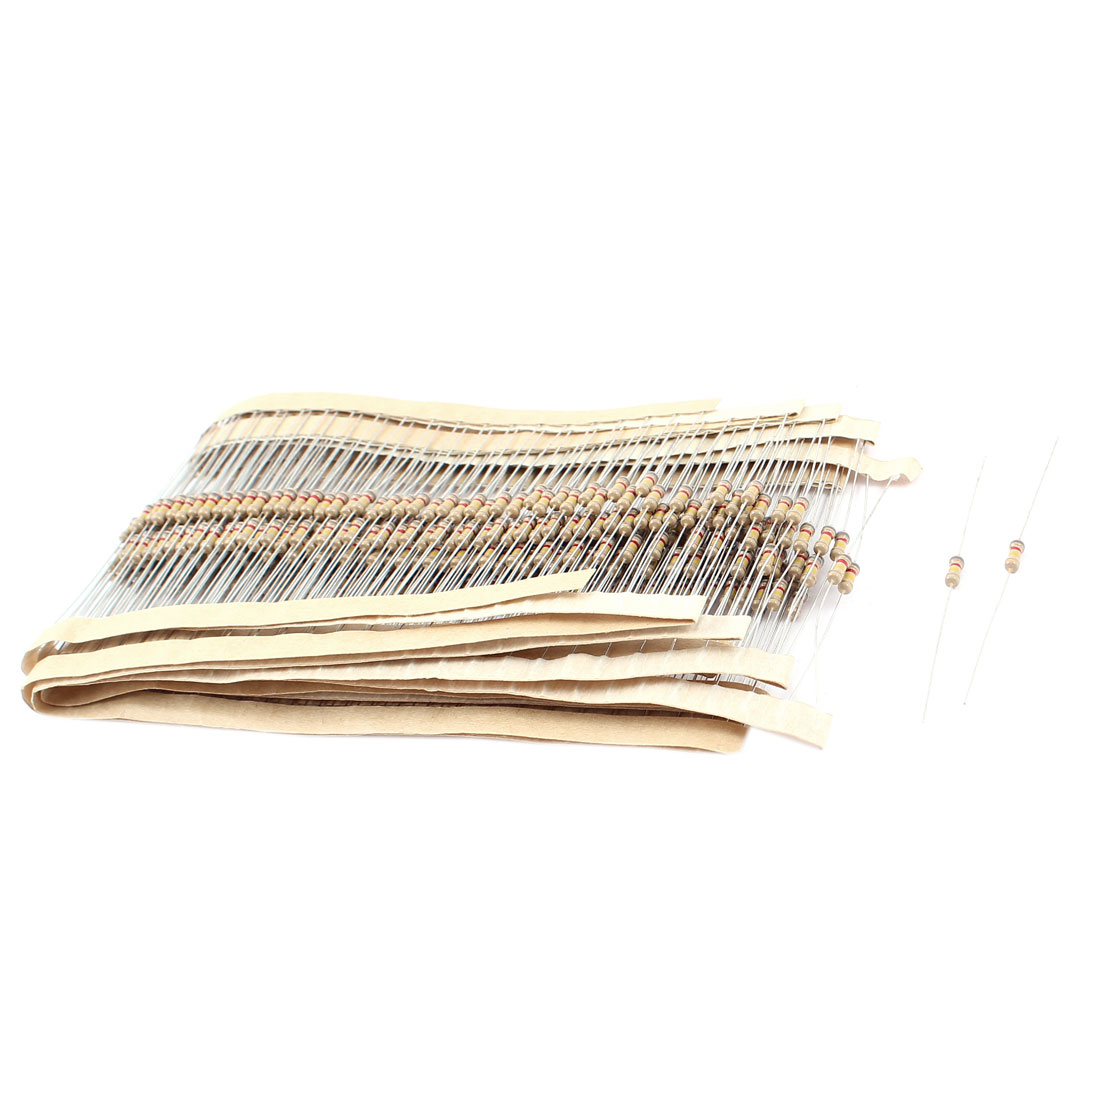 400PCS 0.25W 5% Tolerance 820K Ohm Axial Leads Carbon Film Resistors